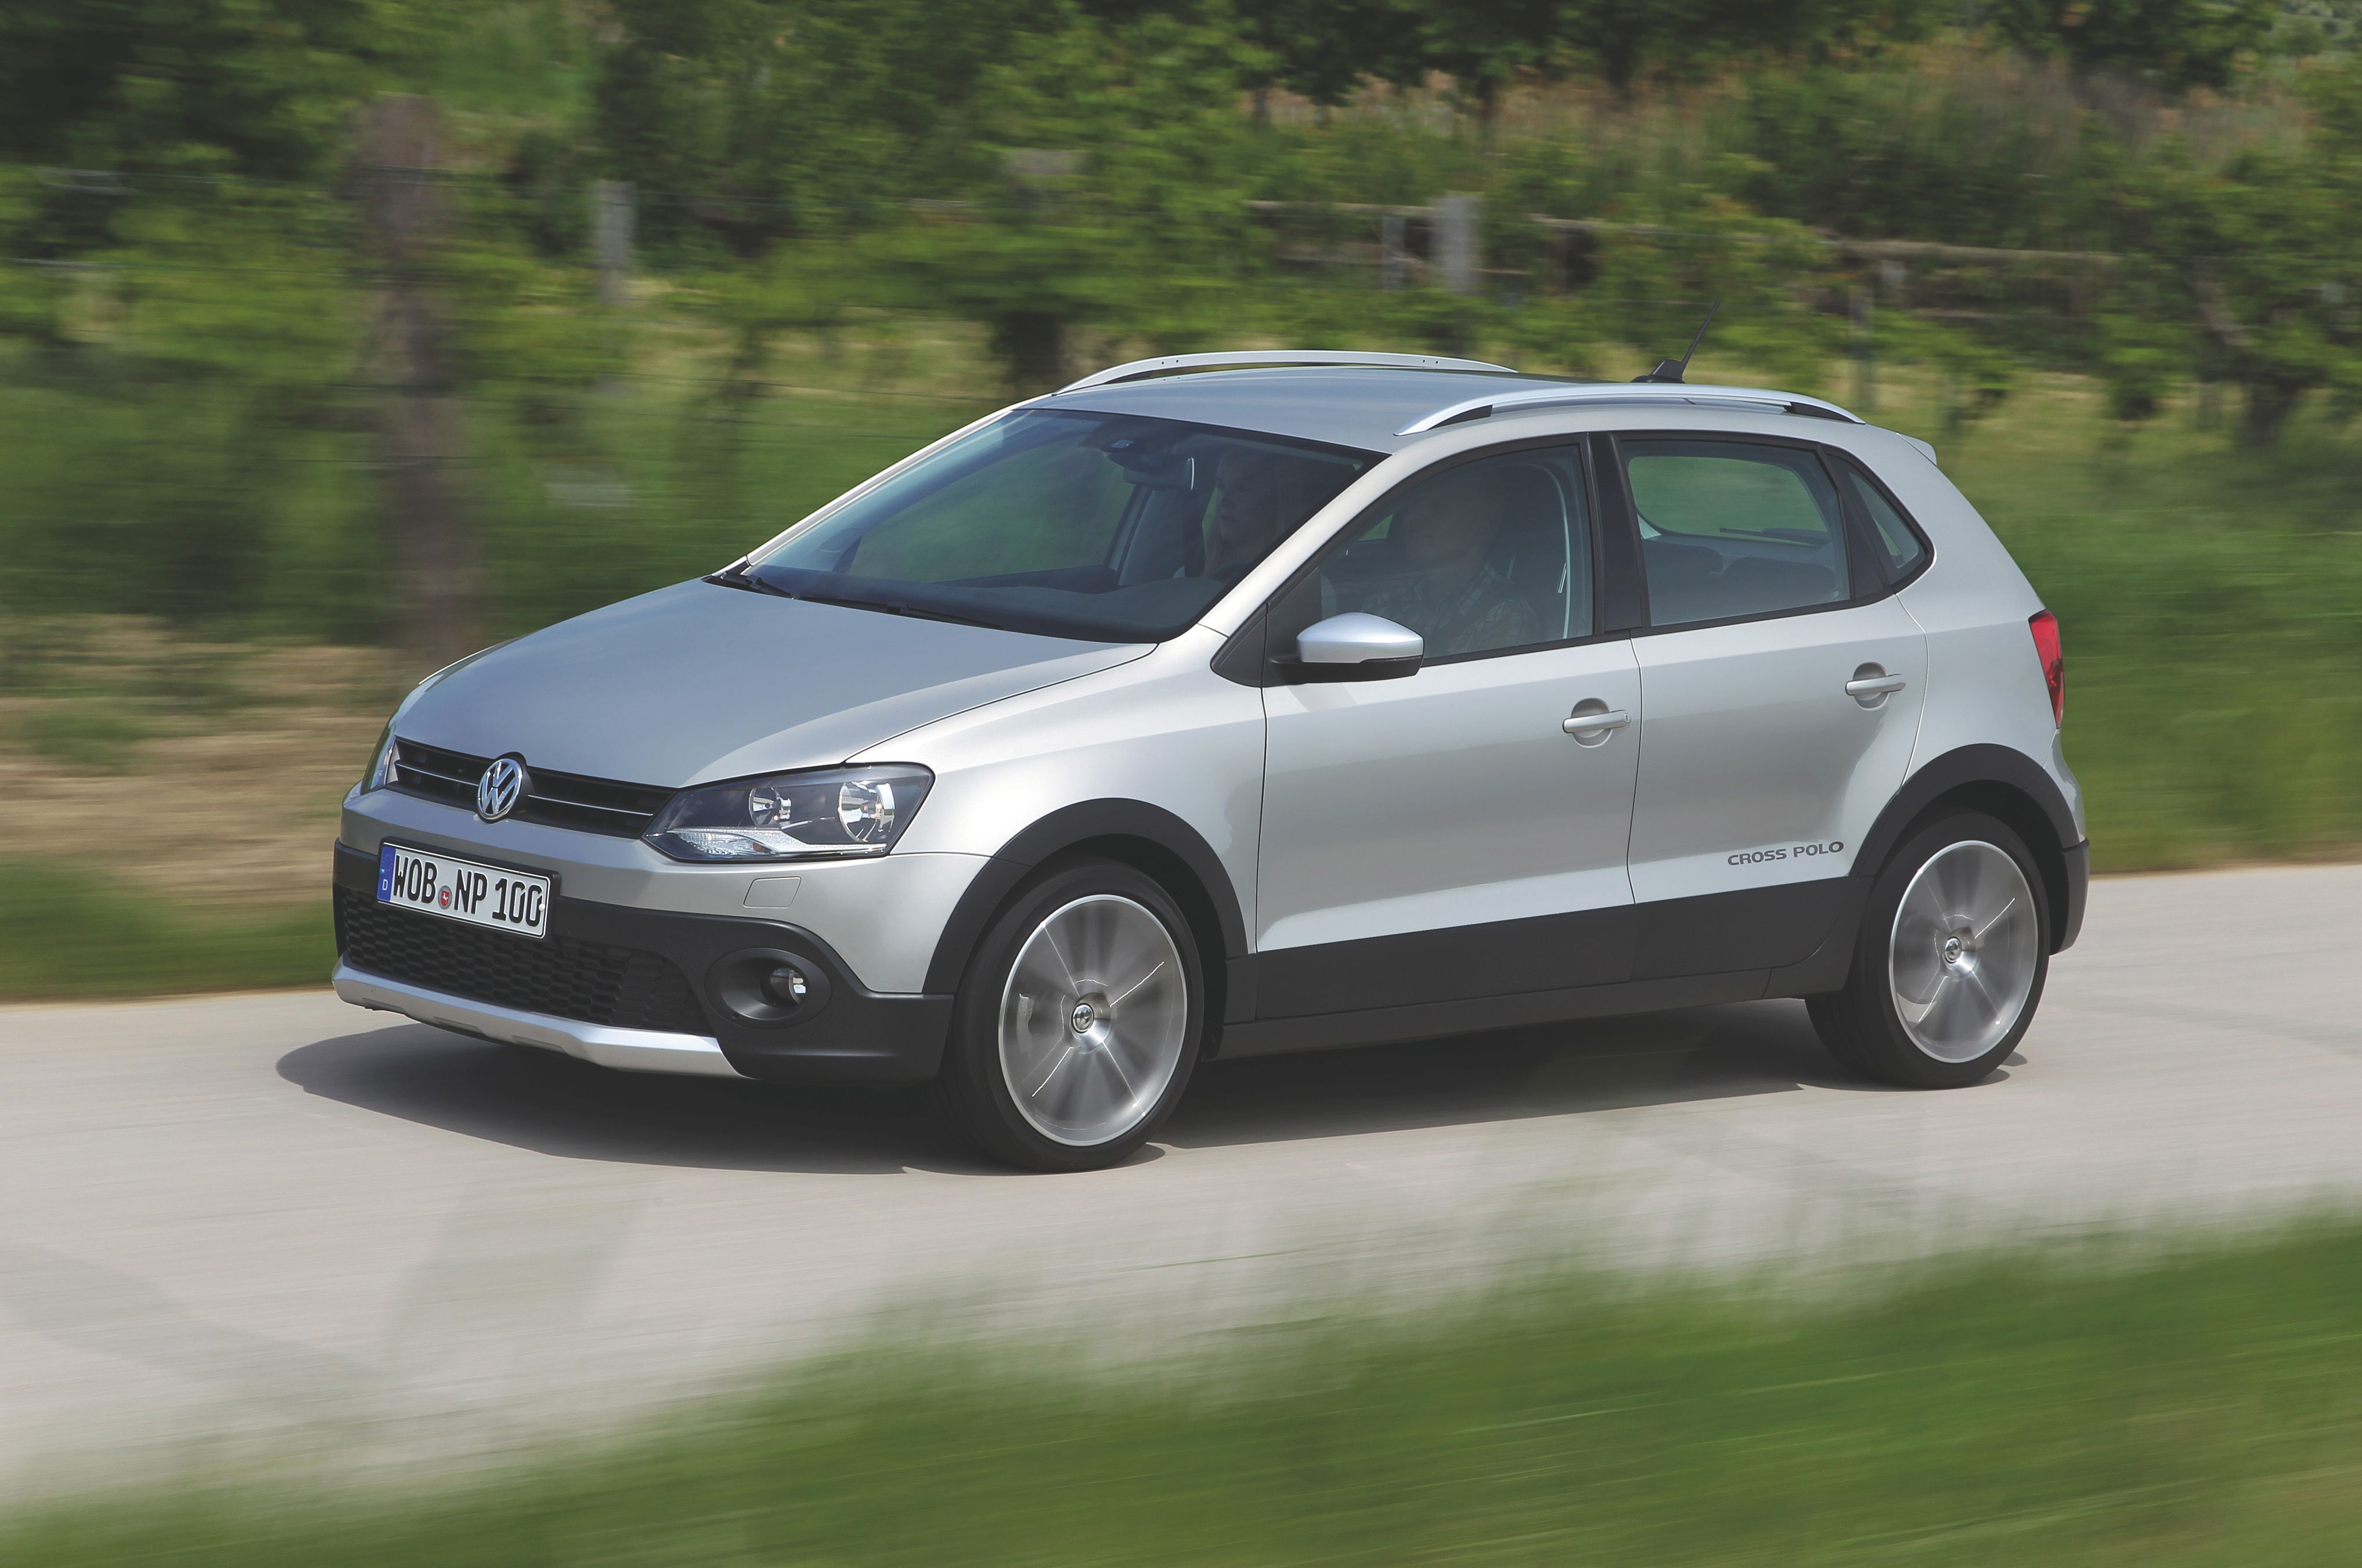 2013 Volkswagen CrossPolo Front Three Quarter1